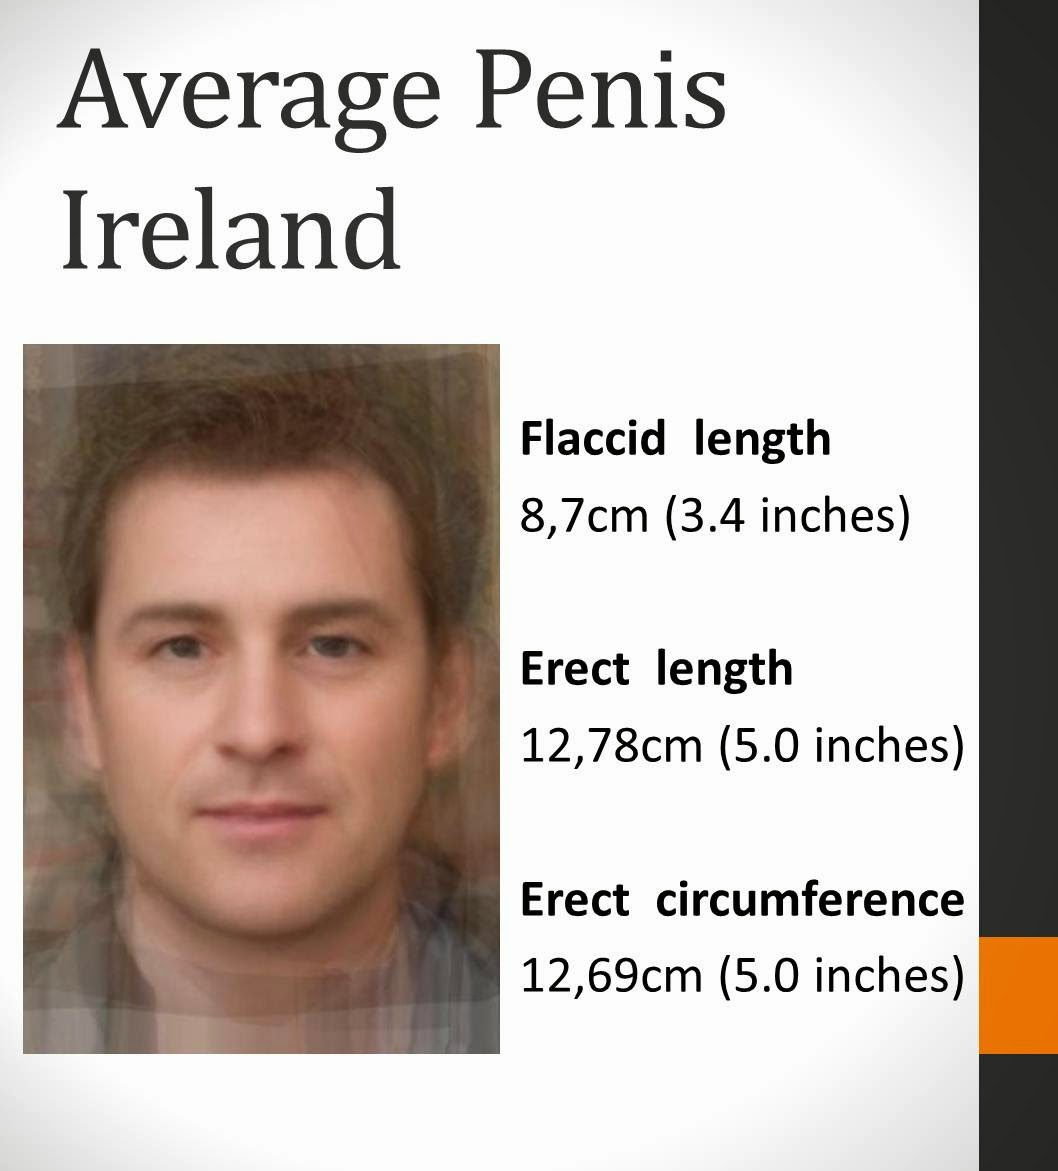 That's what an average size penis